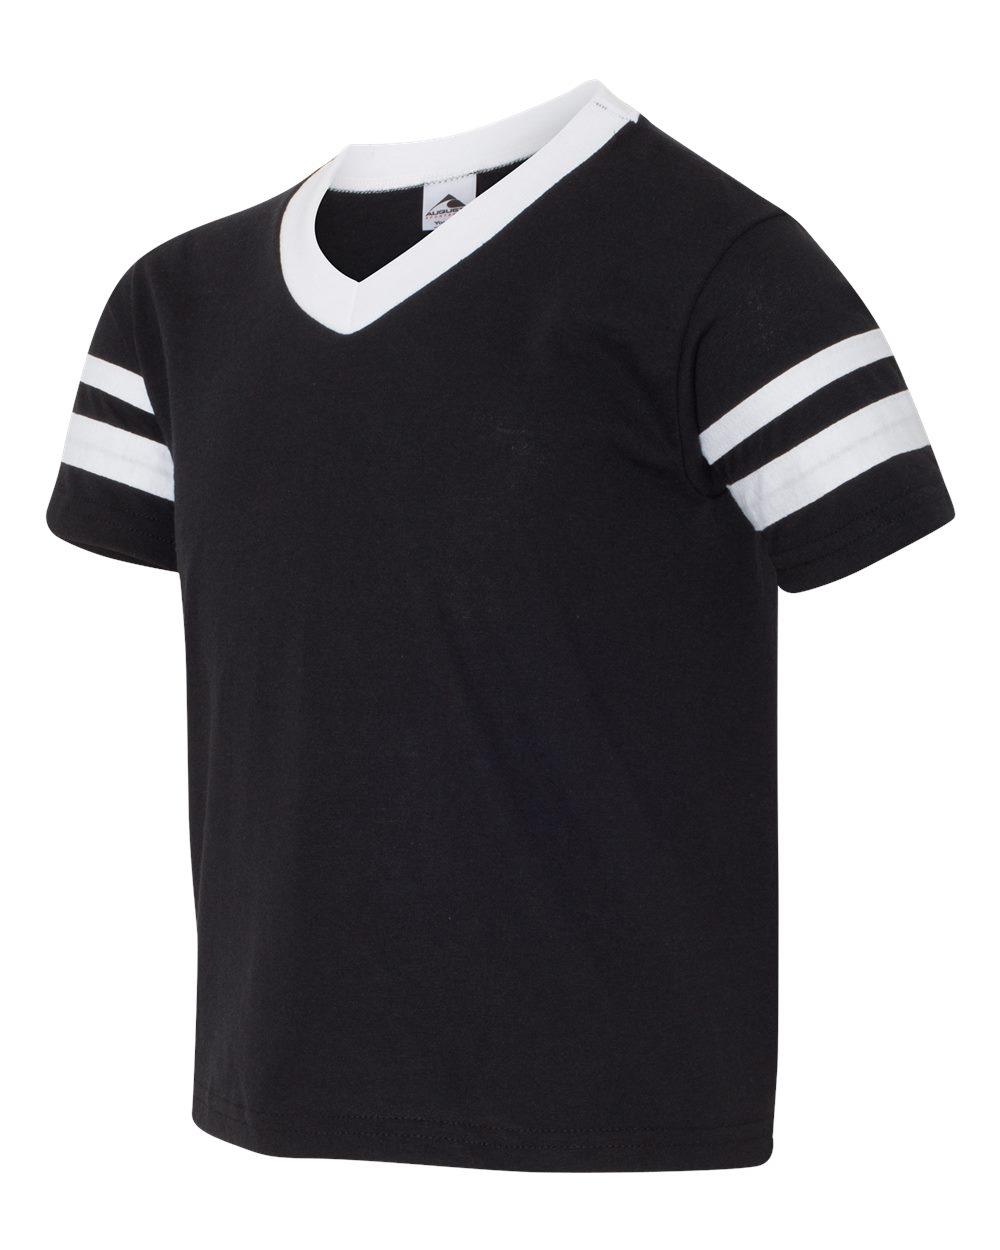 Augusta Sportswear 361 - Youth V-Neck Jersey with Striped ...